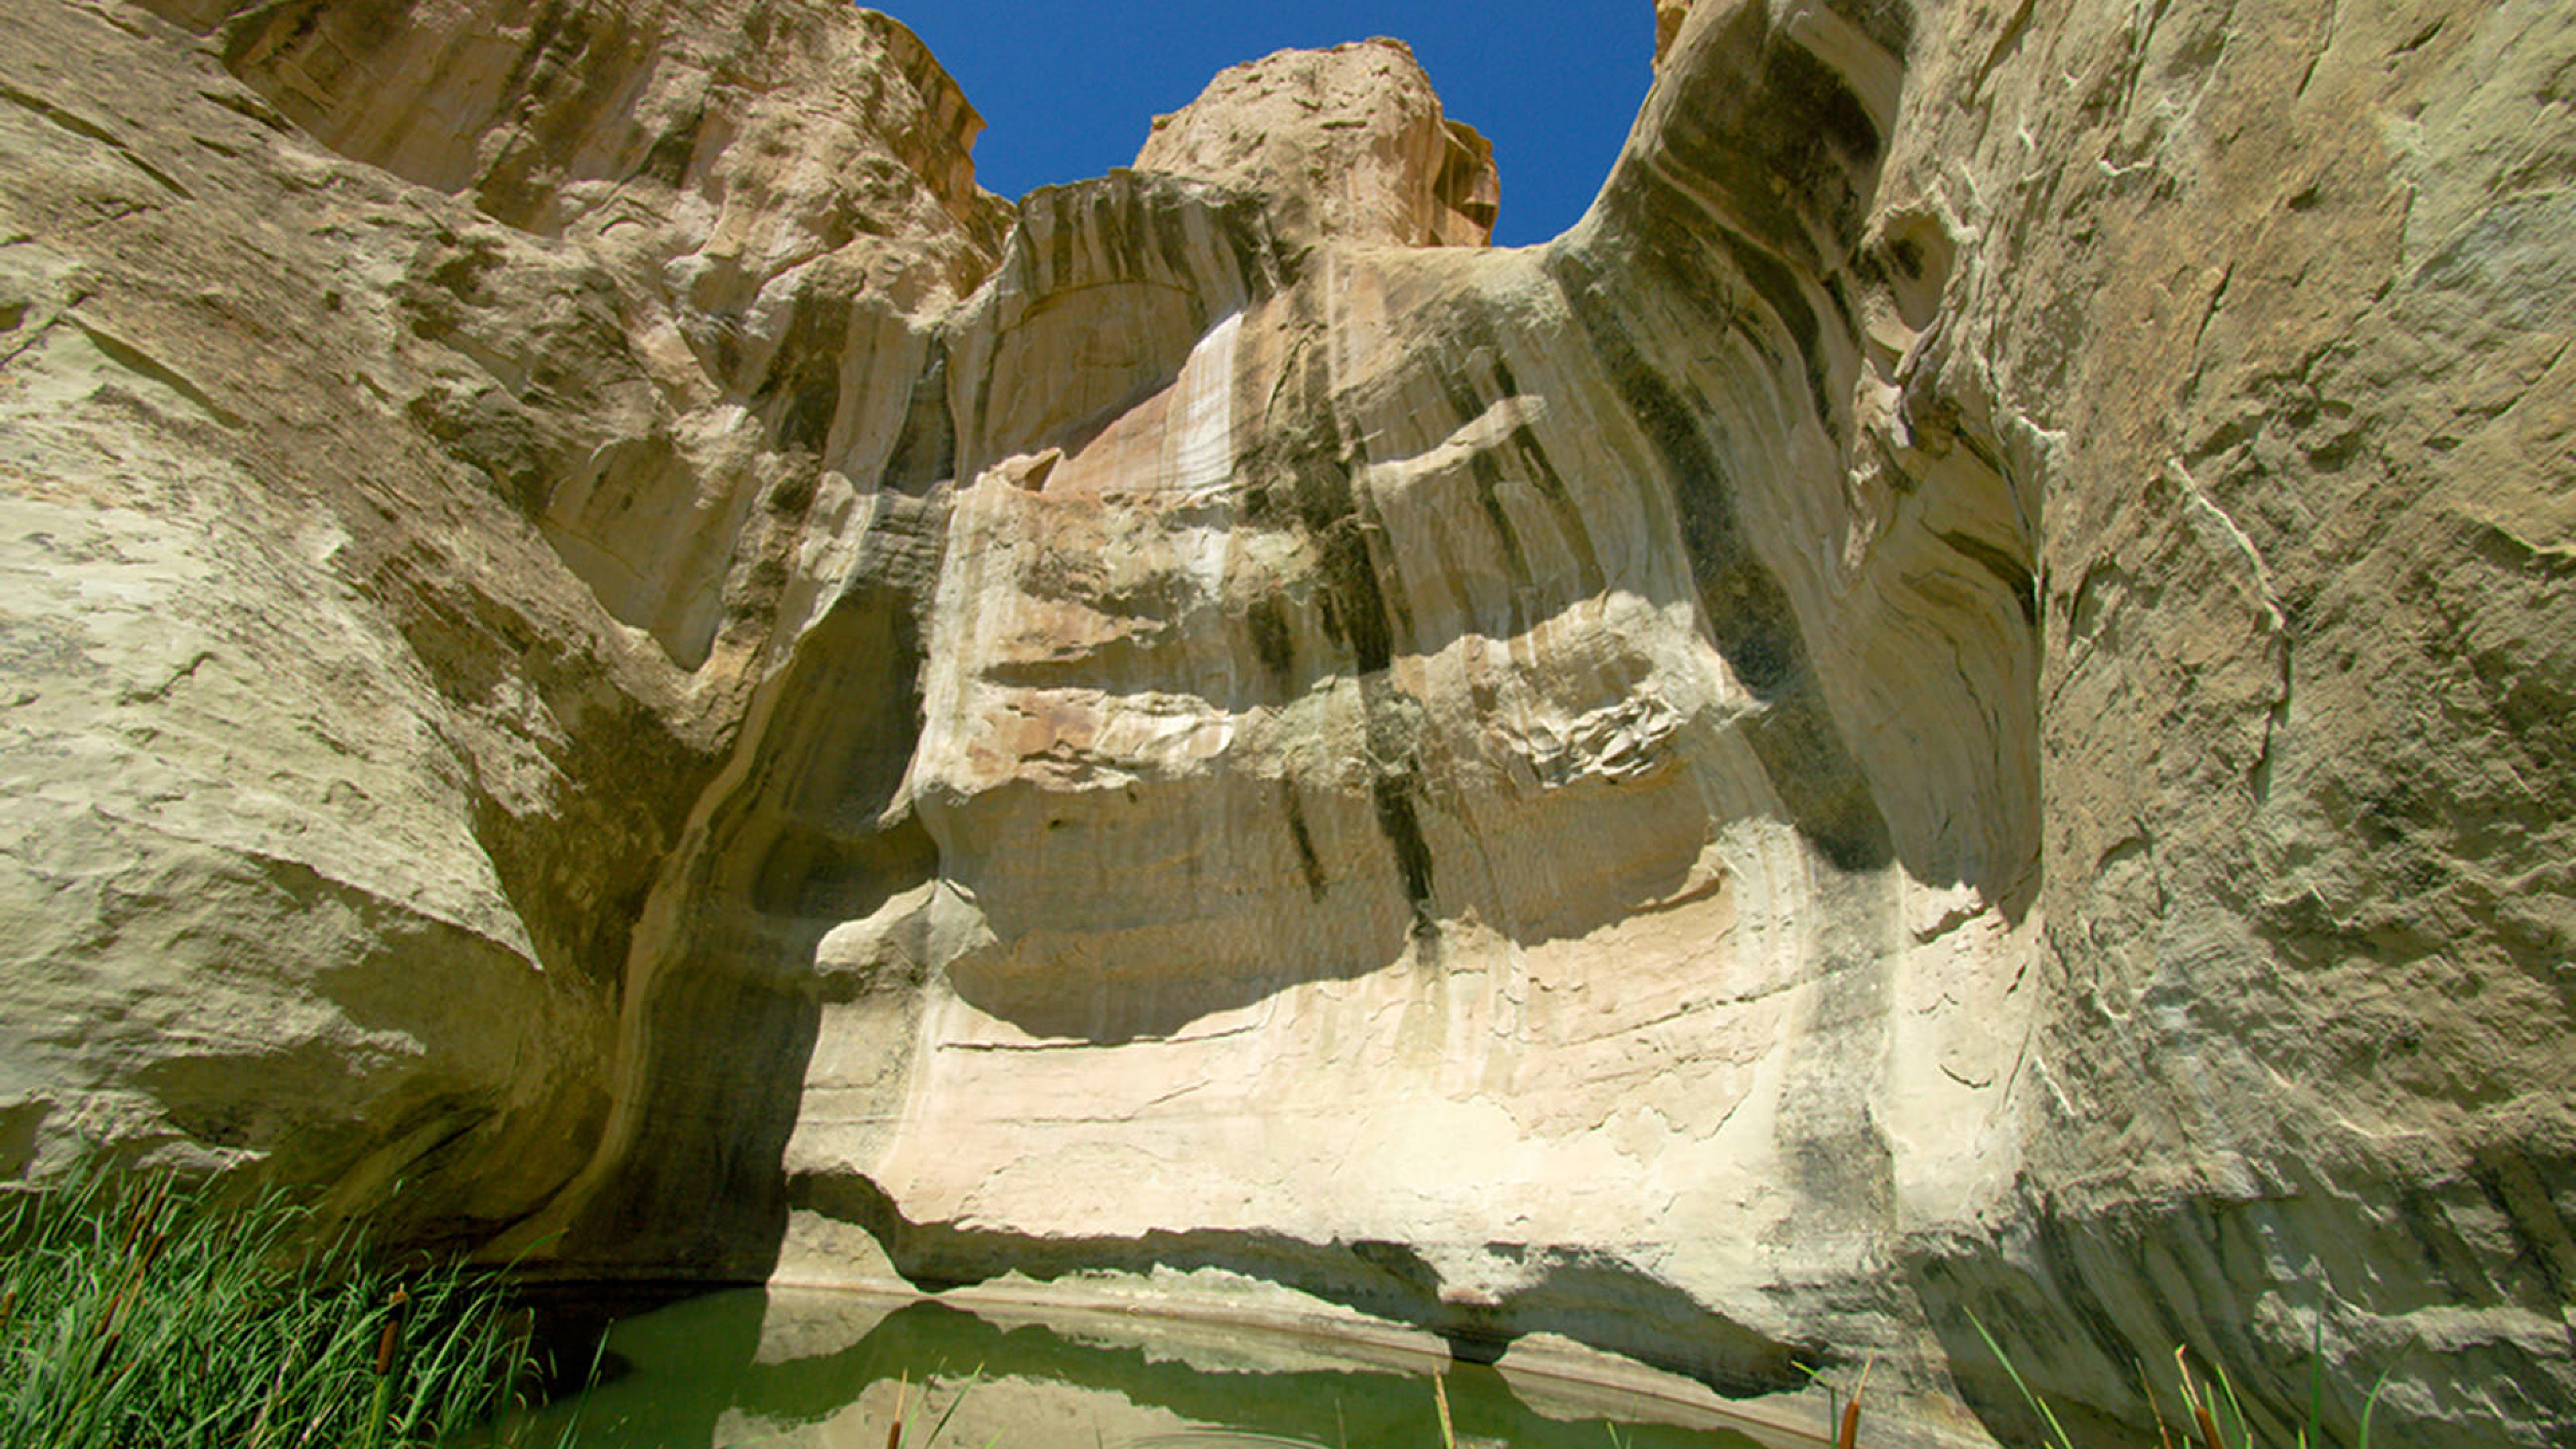 Body of water at El Morro National Monument